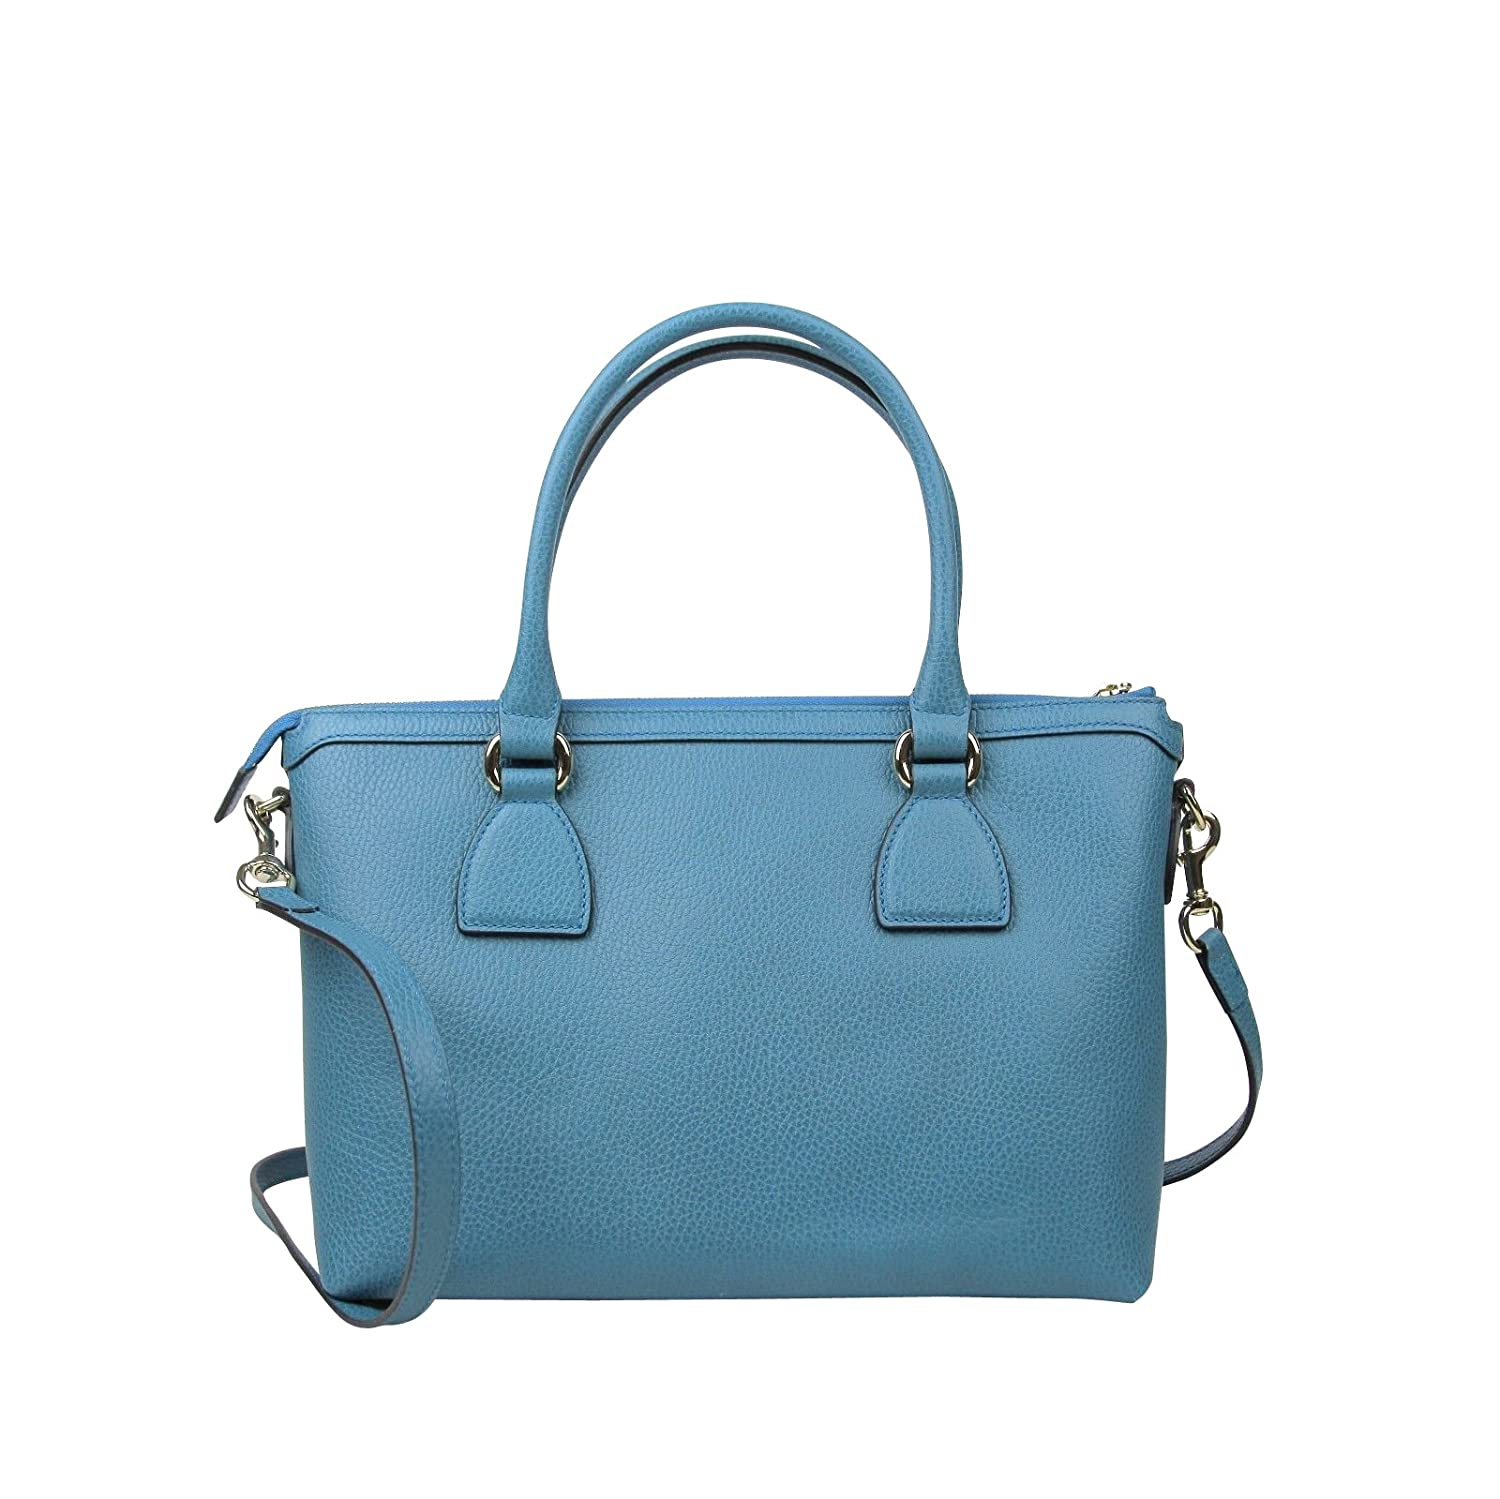 6a4938f45fa2 Amazon.com: Gucci GG Charm Teal Blue Leather Medium Convertible Straight Bag  With Strap 449659 4618: Shoes